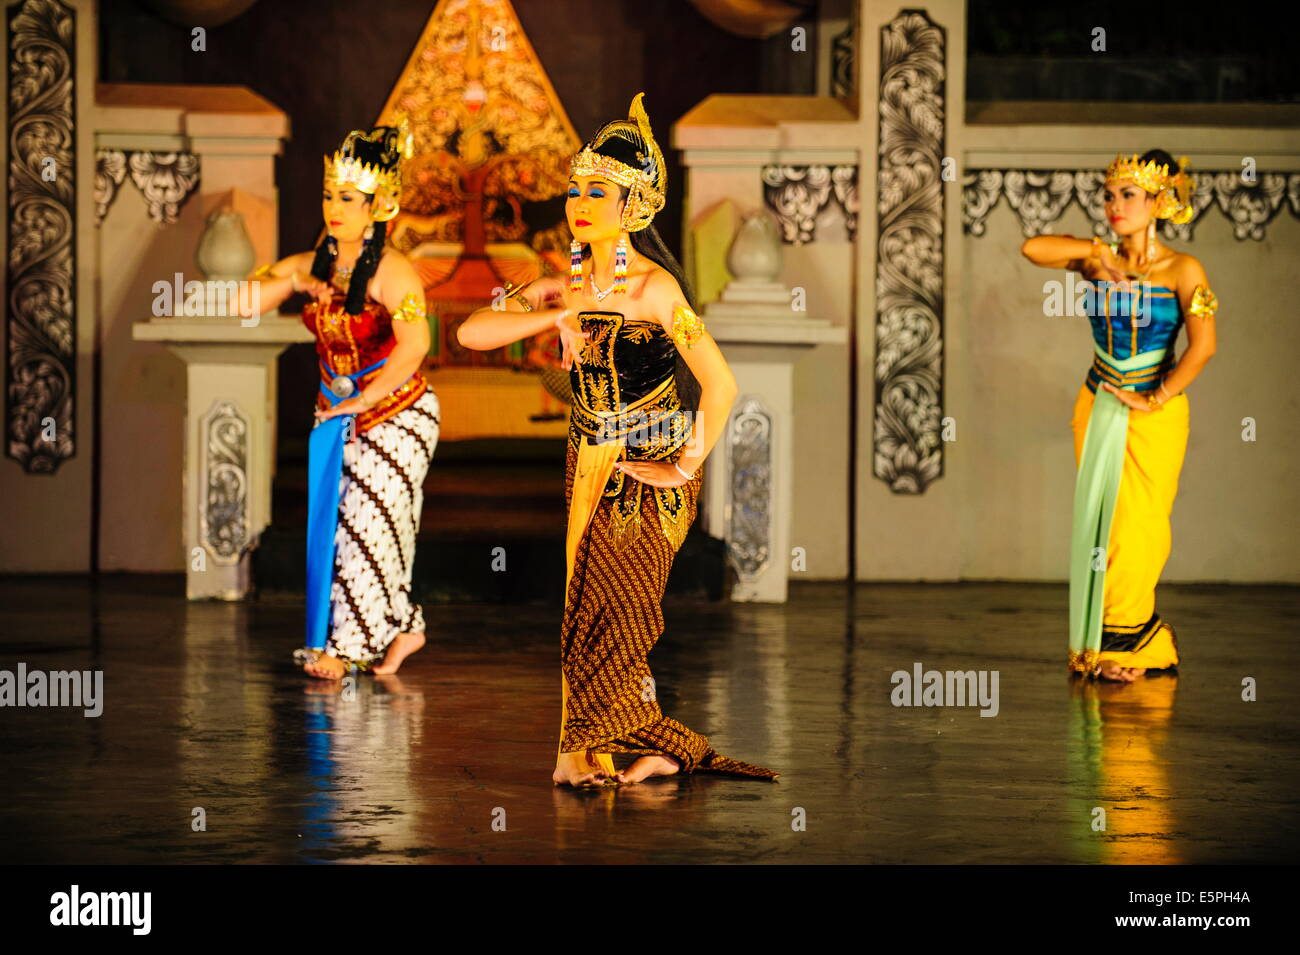 Dancers at a traditional  Javanese dance, Yogyakarta, Java, Indonesia, Southeast Asia, Asia - Stock Image